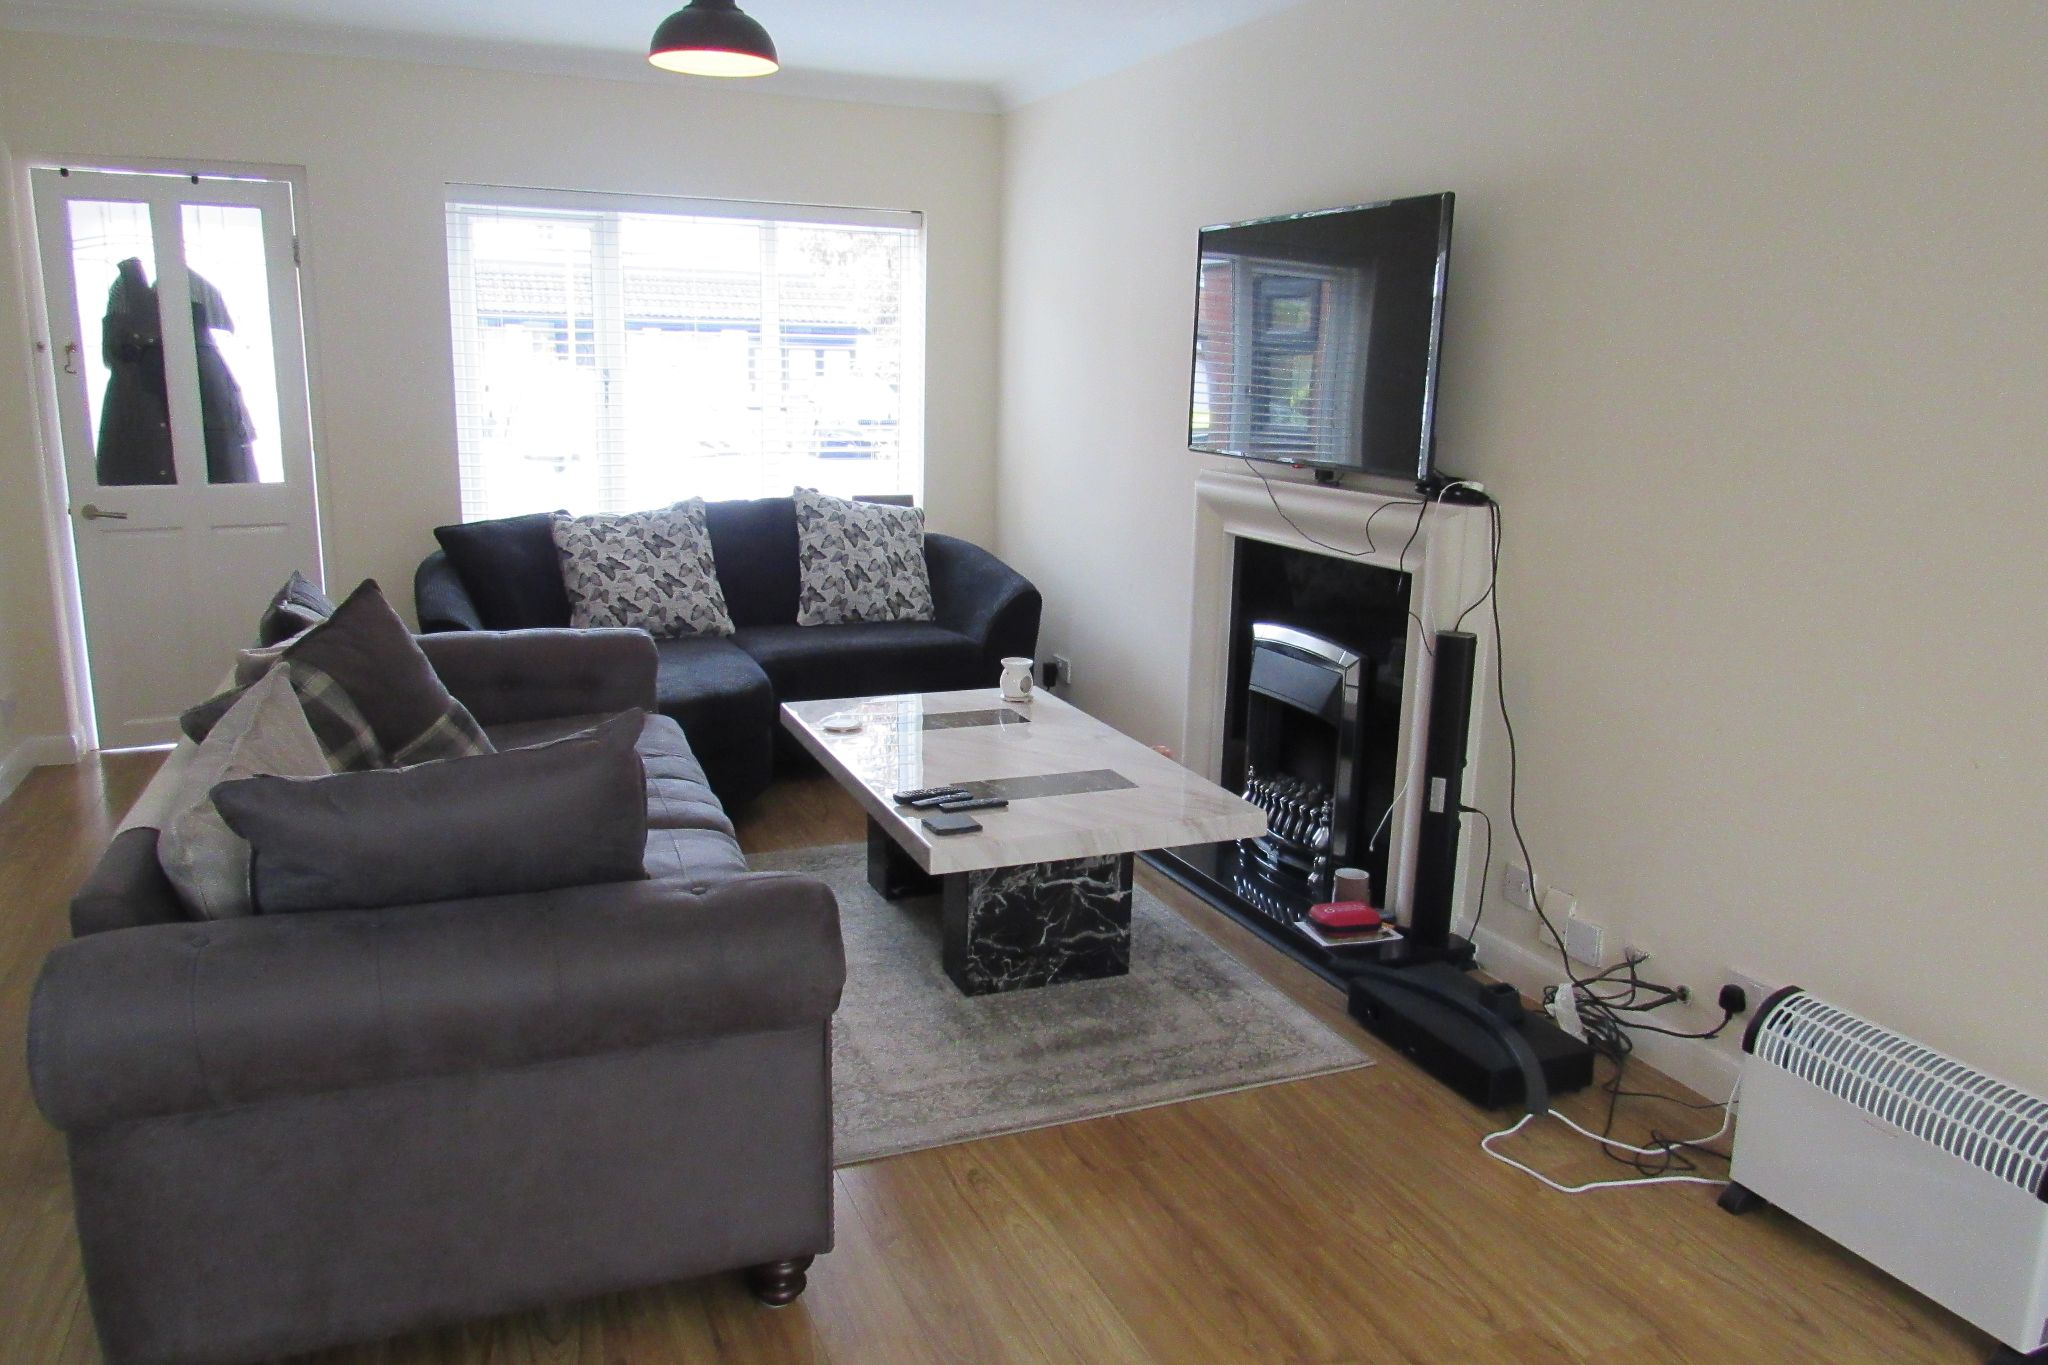 3 bedroom detached house For Sale in Manchester - Photograph 4.